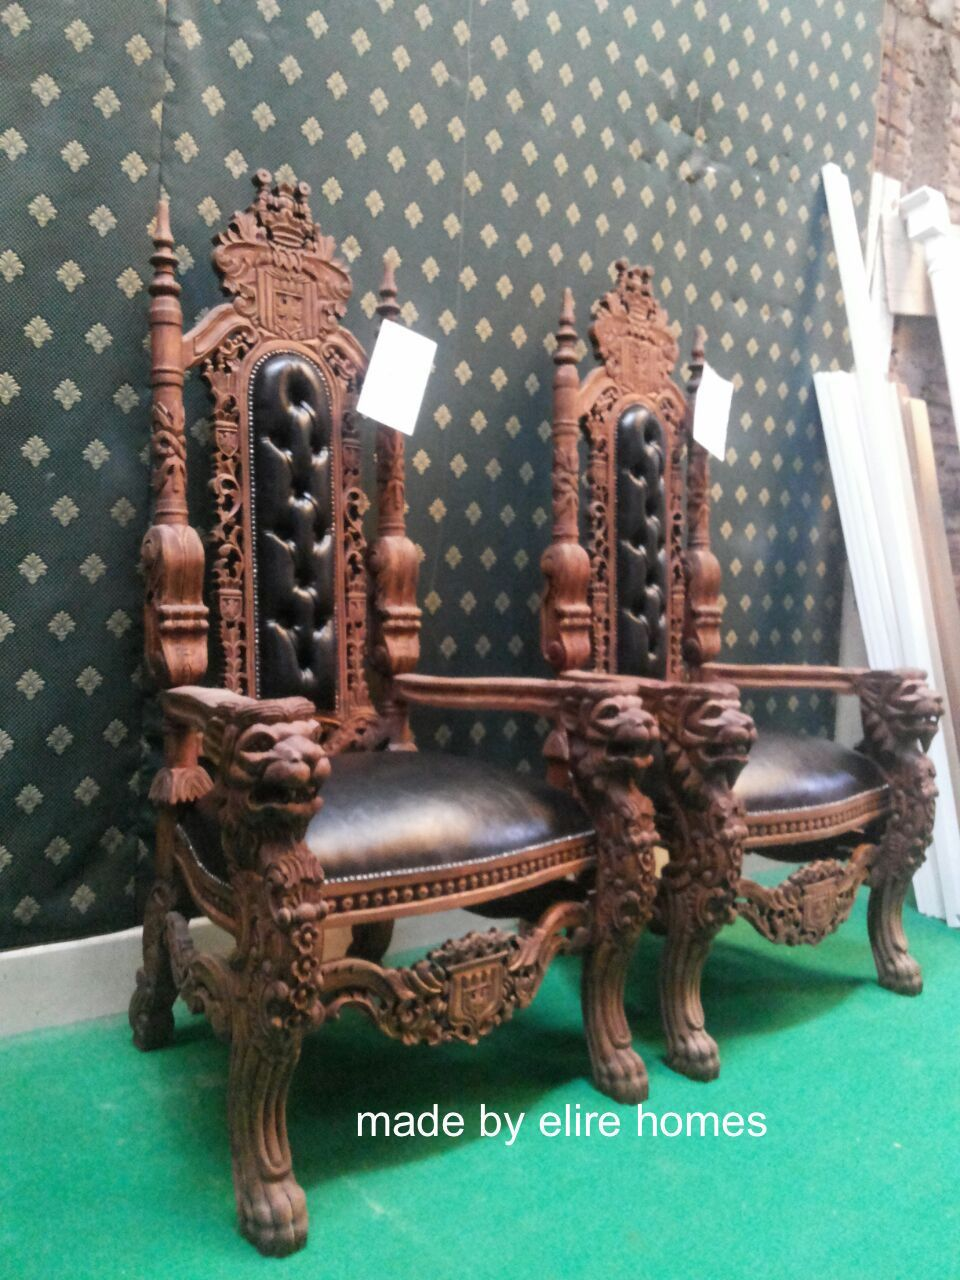 Wood swivel desk chair laquered finish warms amp padded seat ebay - Lion King Throne Chair Antique Mahogany Dark Wood Tone With Faux Leather